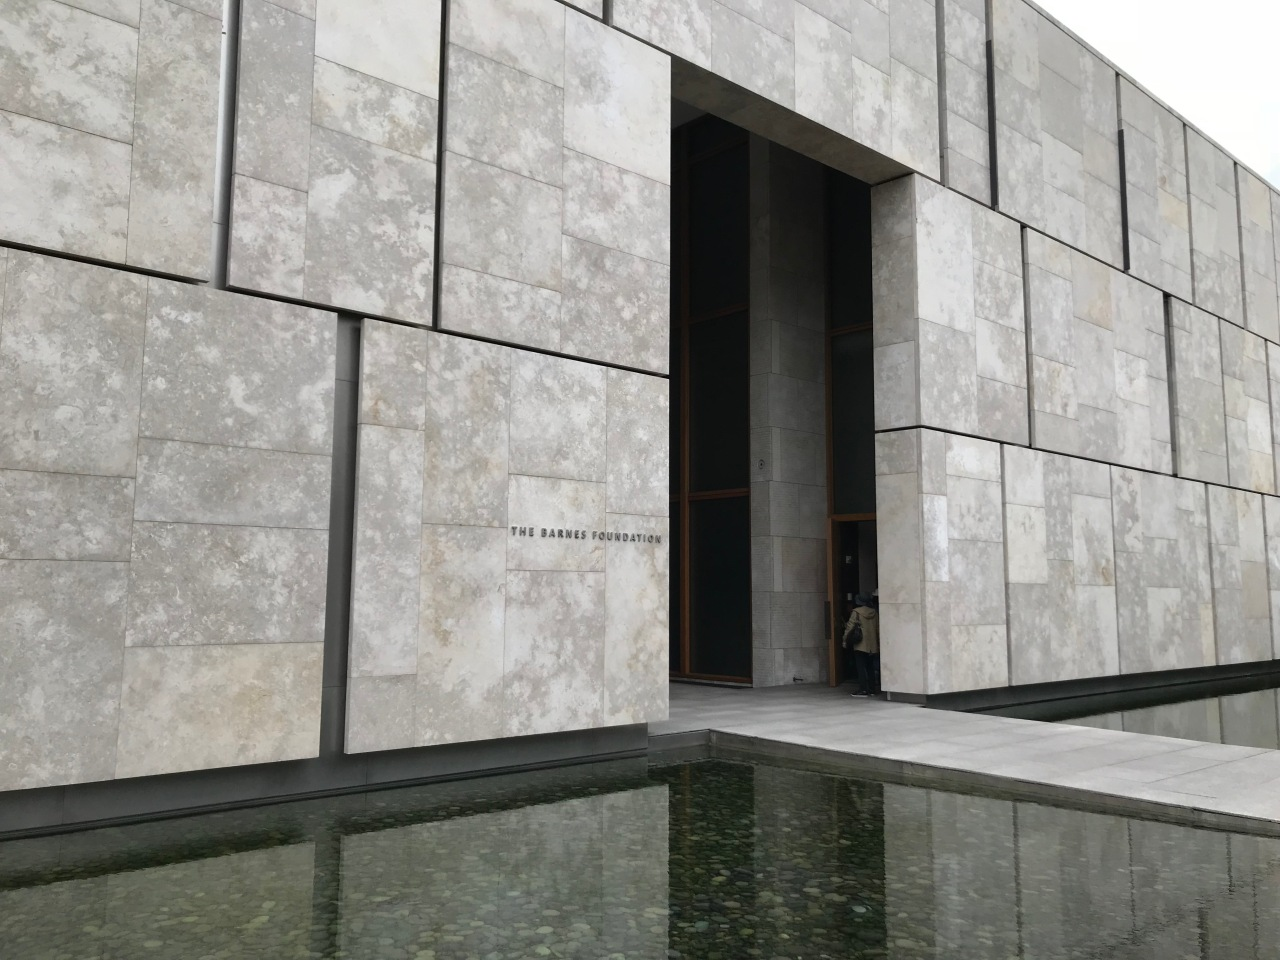 Philadelphia: Barnes Foundation